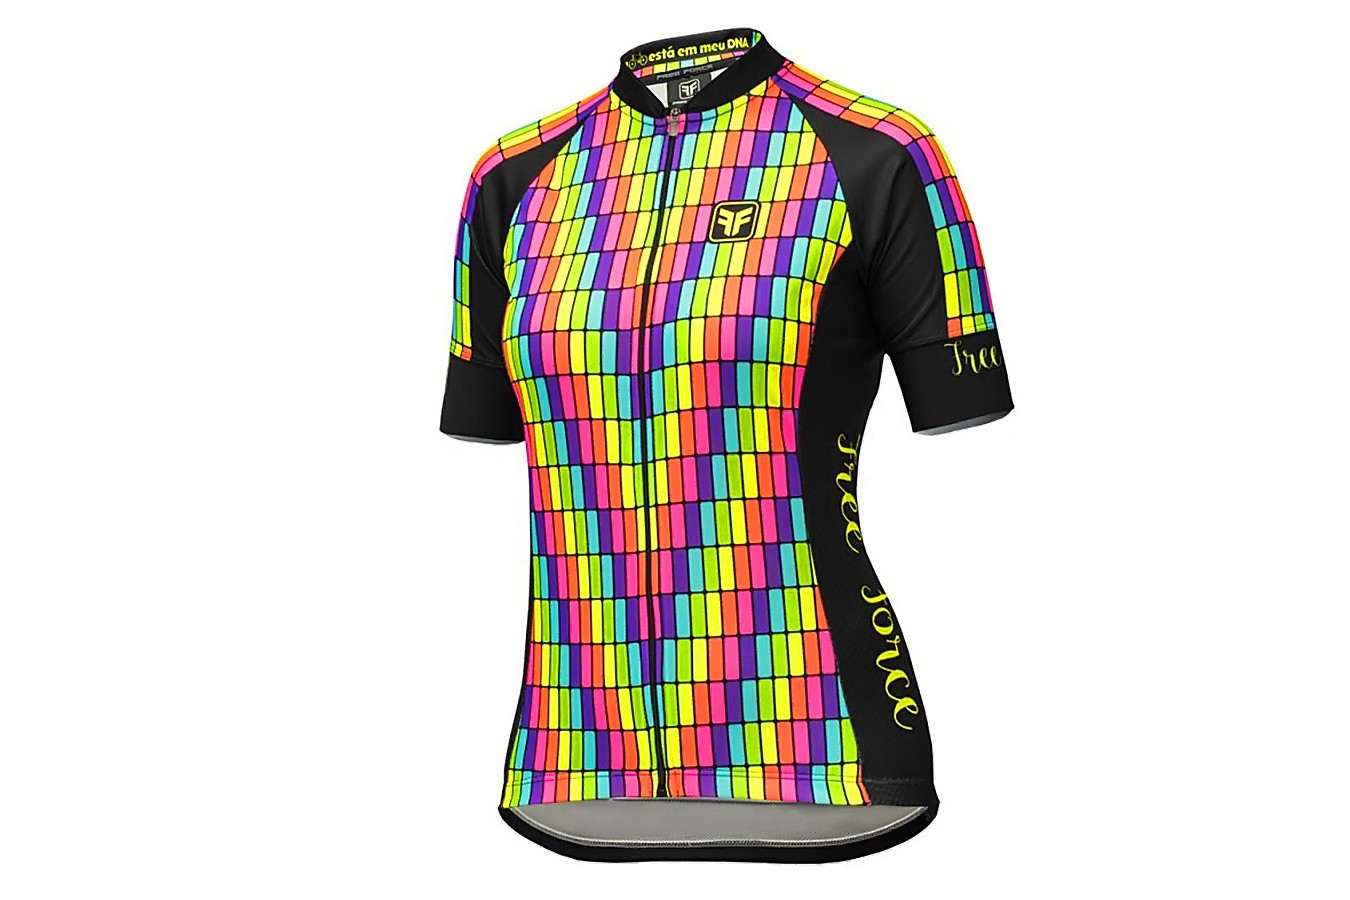 Camisa Ciclista Feminina Display - Free Force